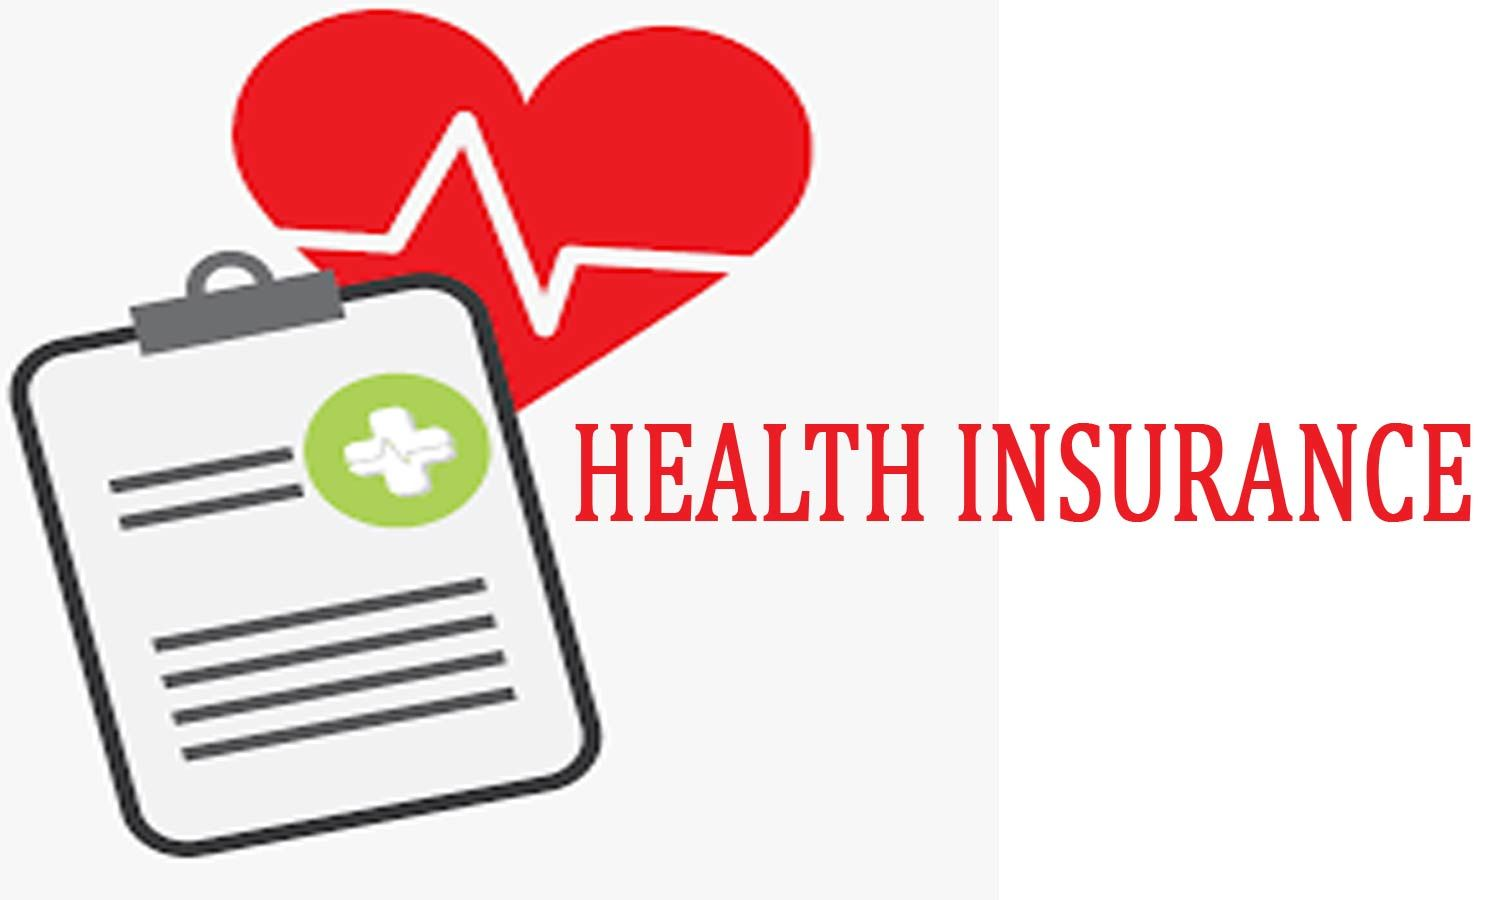 Reliance general insurance launches new health insurance